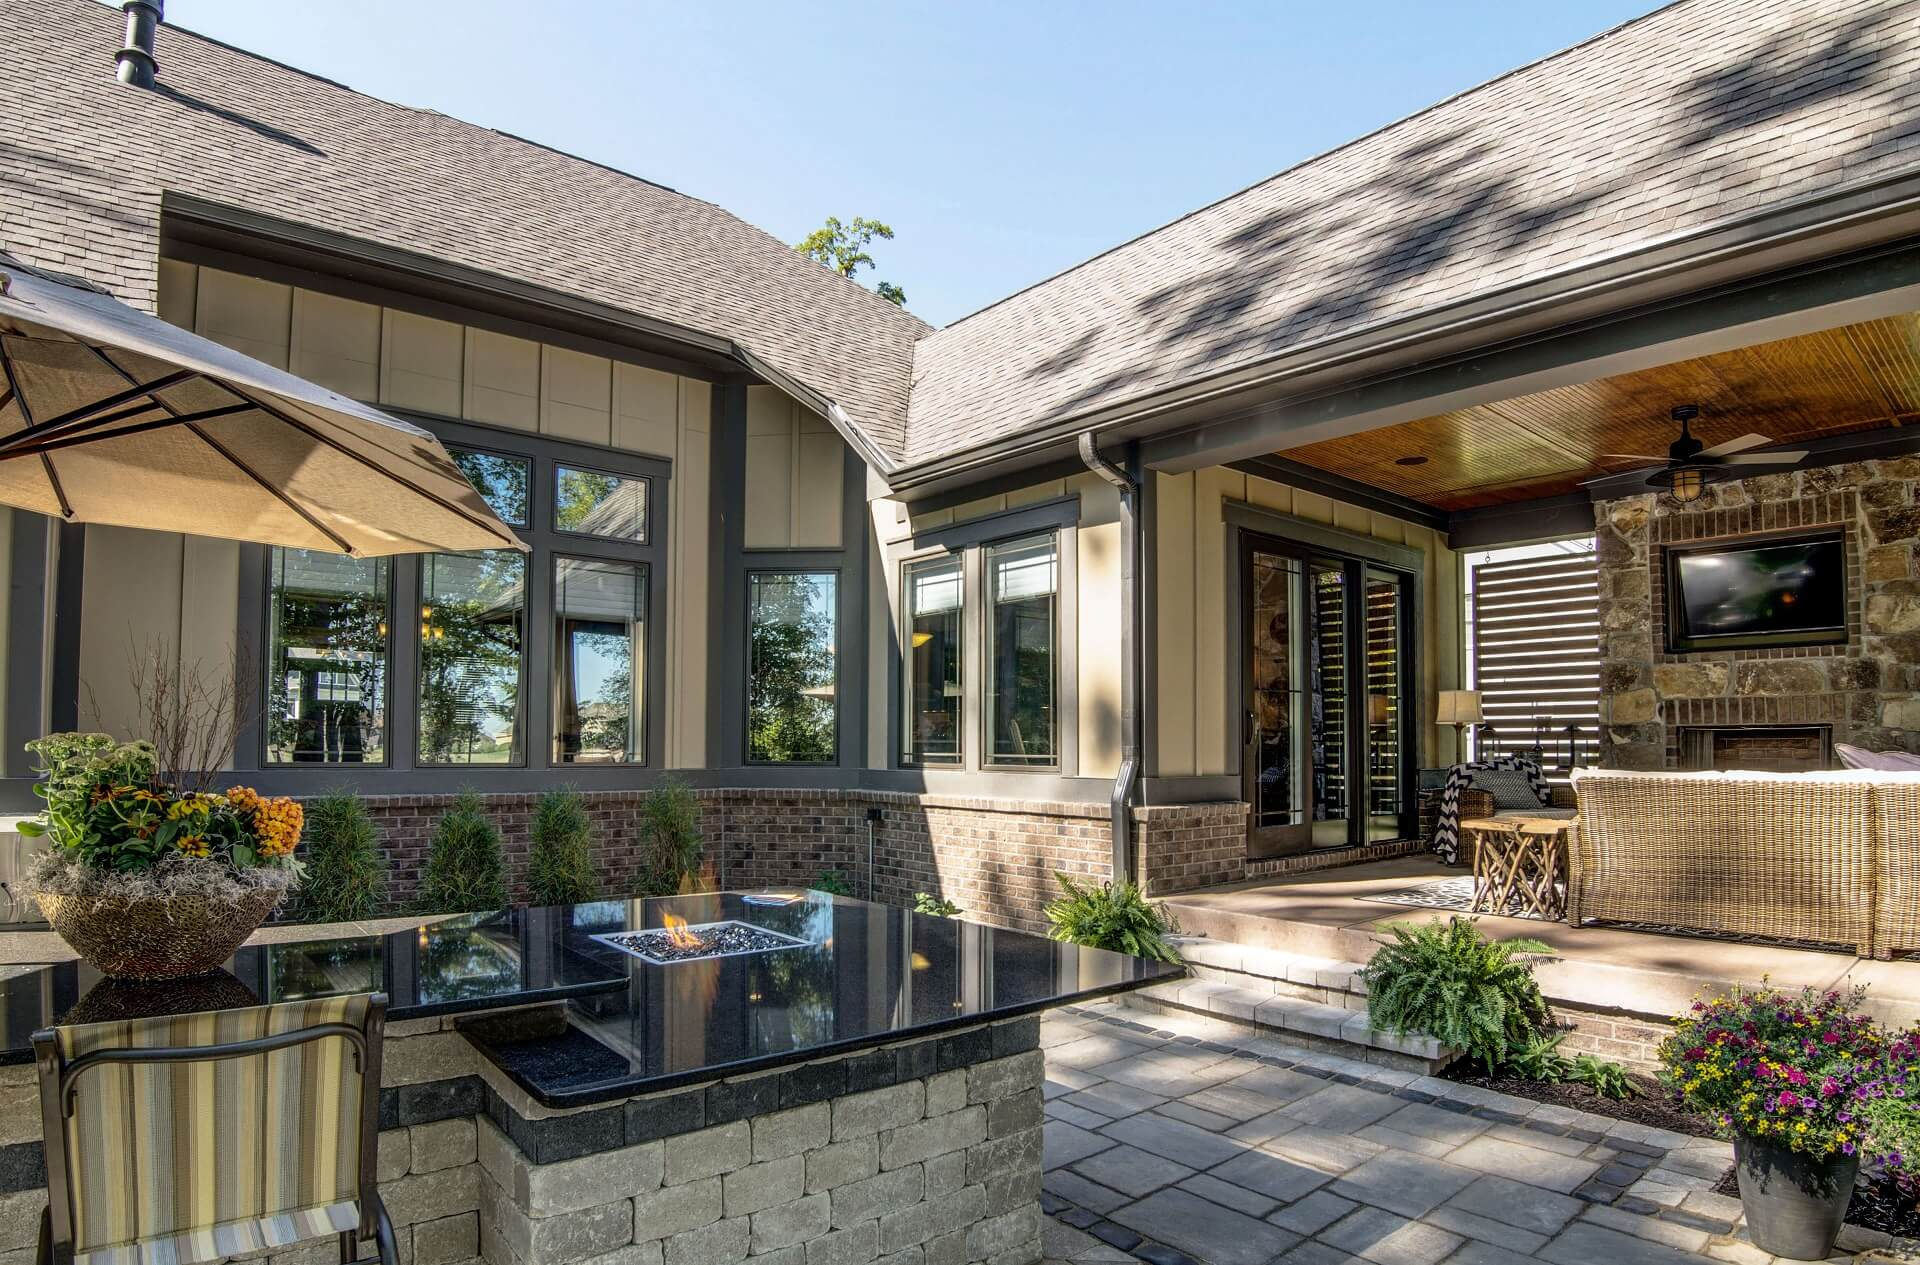 Services-Fort Worth TX Landscape Designs & Outdoor Living Areas-We offer Landscape Design, Outdoor Patios & Pergolas, Outdoor Living Spaces, Stonescapes, Residential & Commercial Landscaping, Irrigation Installation & Repairs, Drainage Systems, Landscape Lighting, Outdoor Living Spaces, Tree Service, Lawn Service, and more.